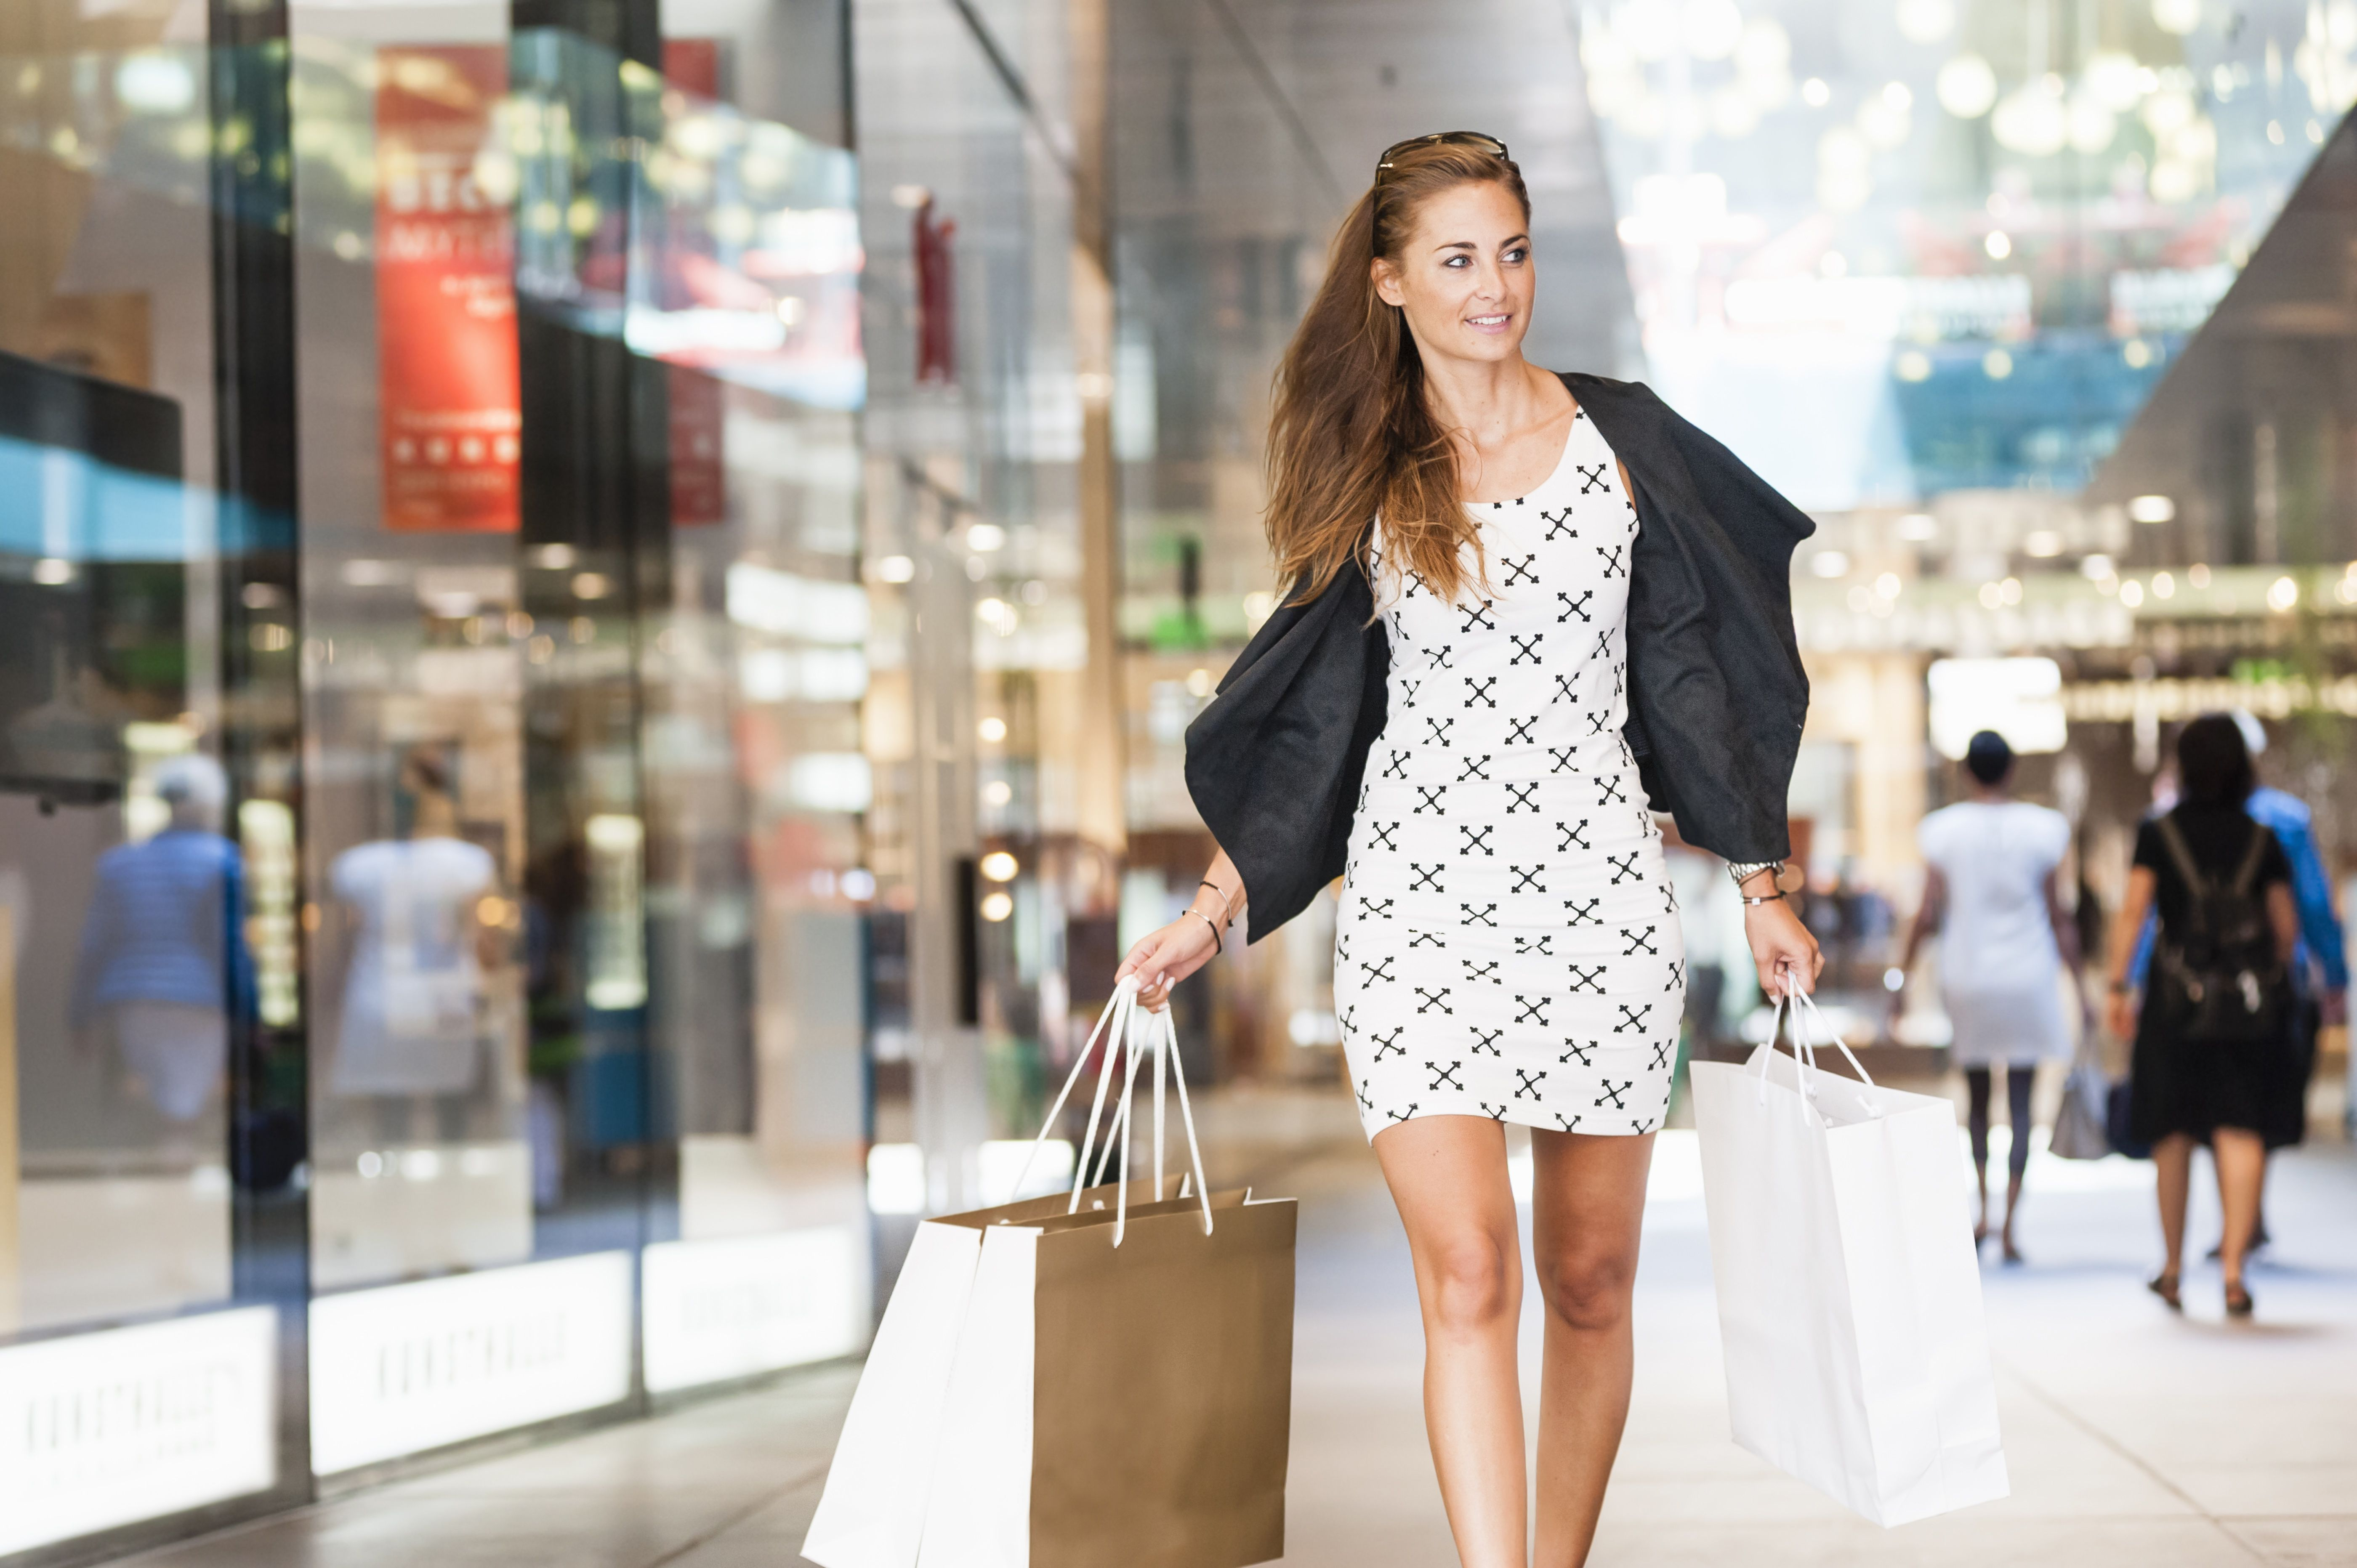 how to clothes shop on a diet